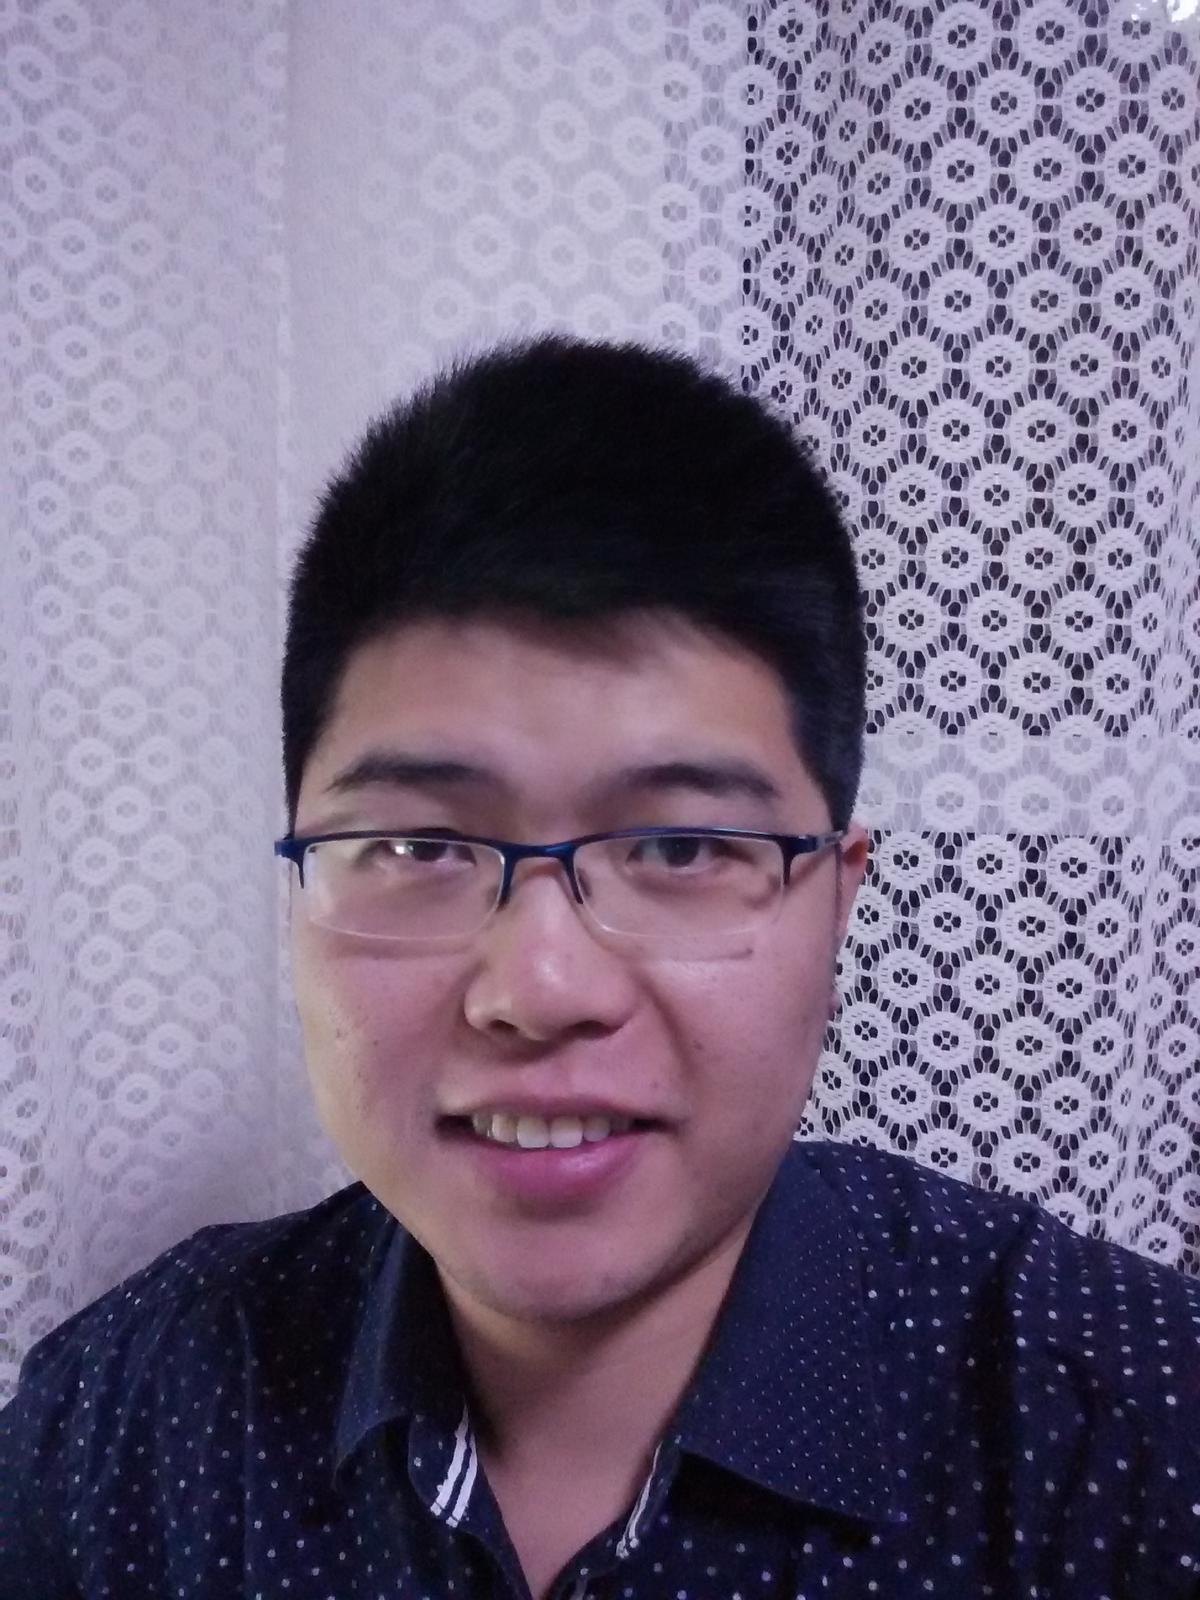 suiwenzhao